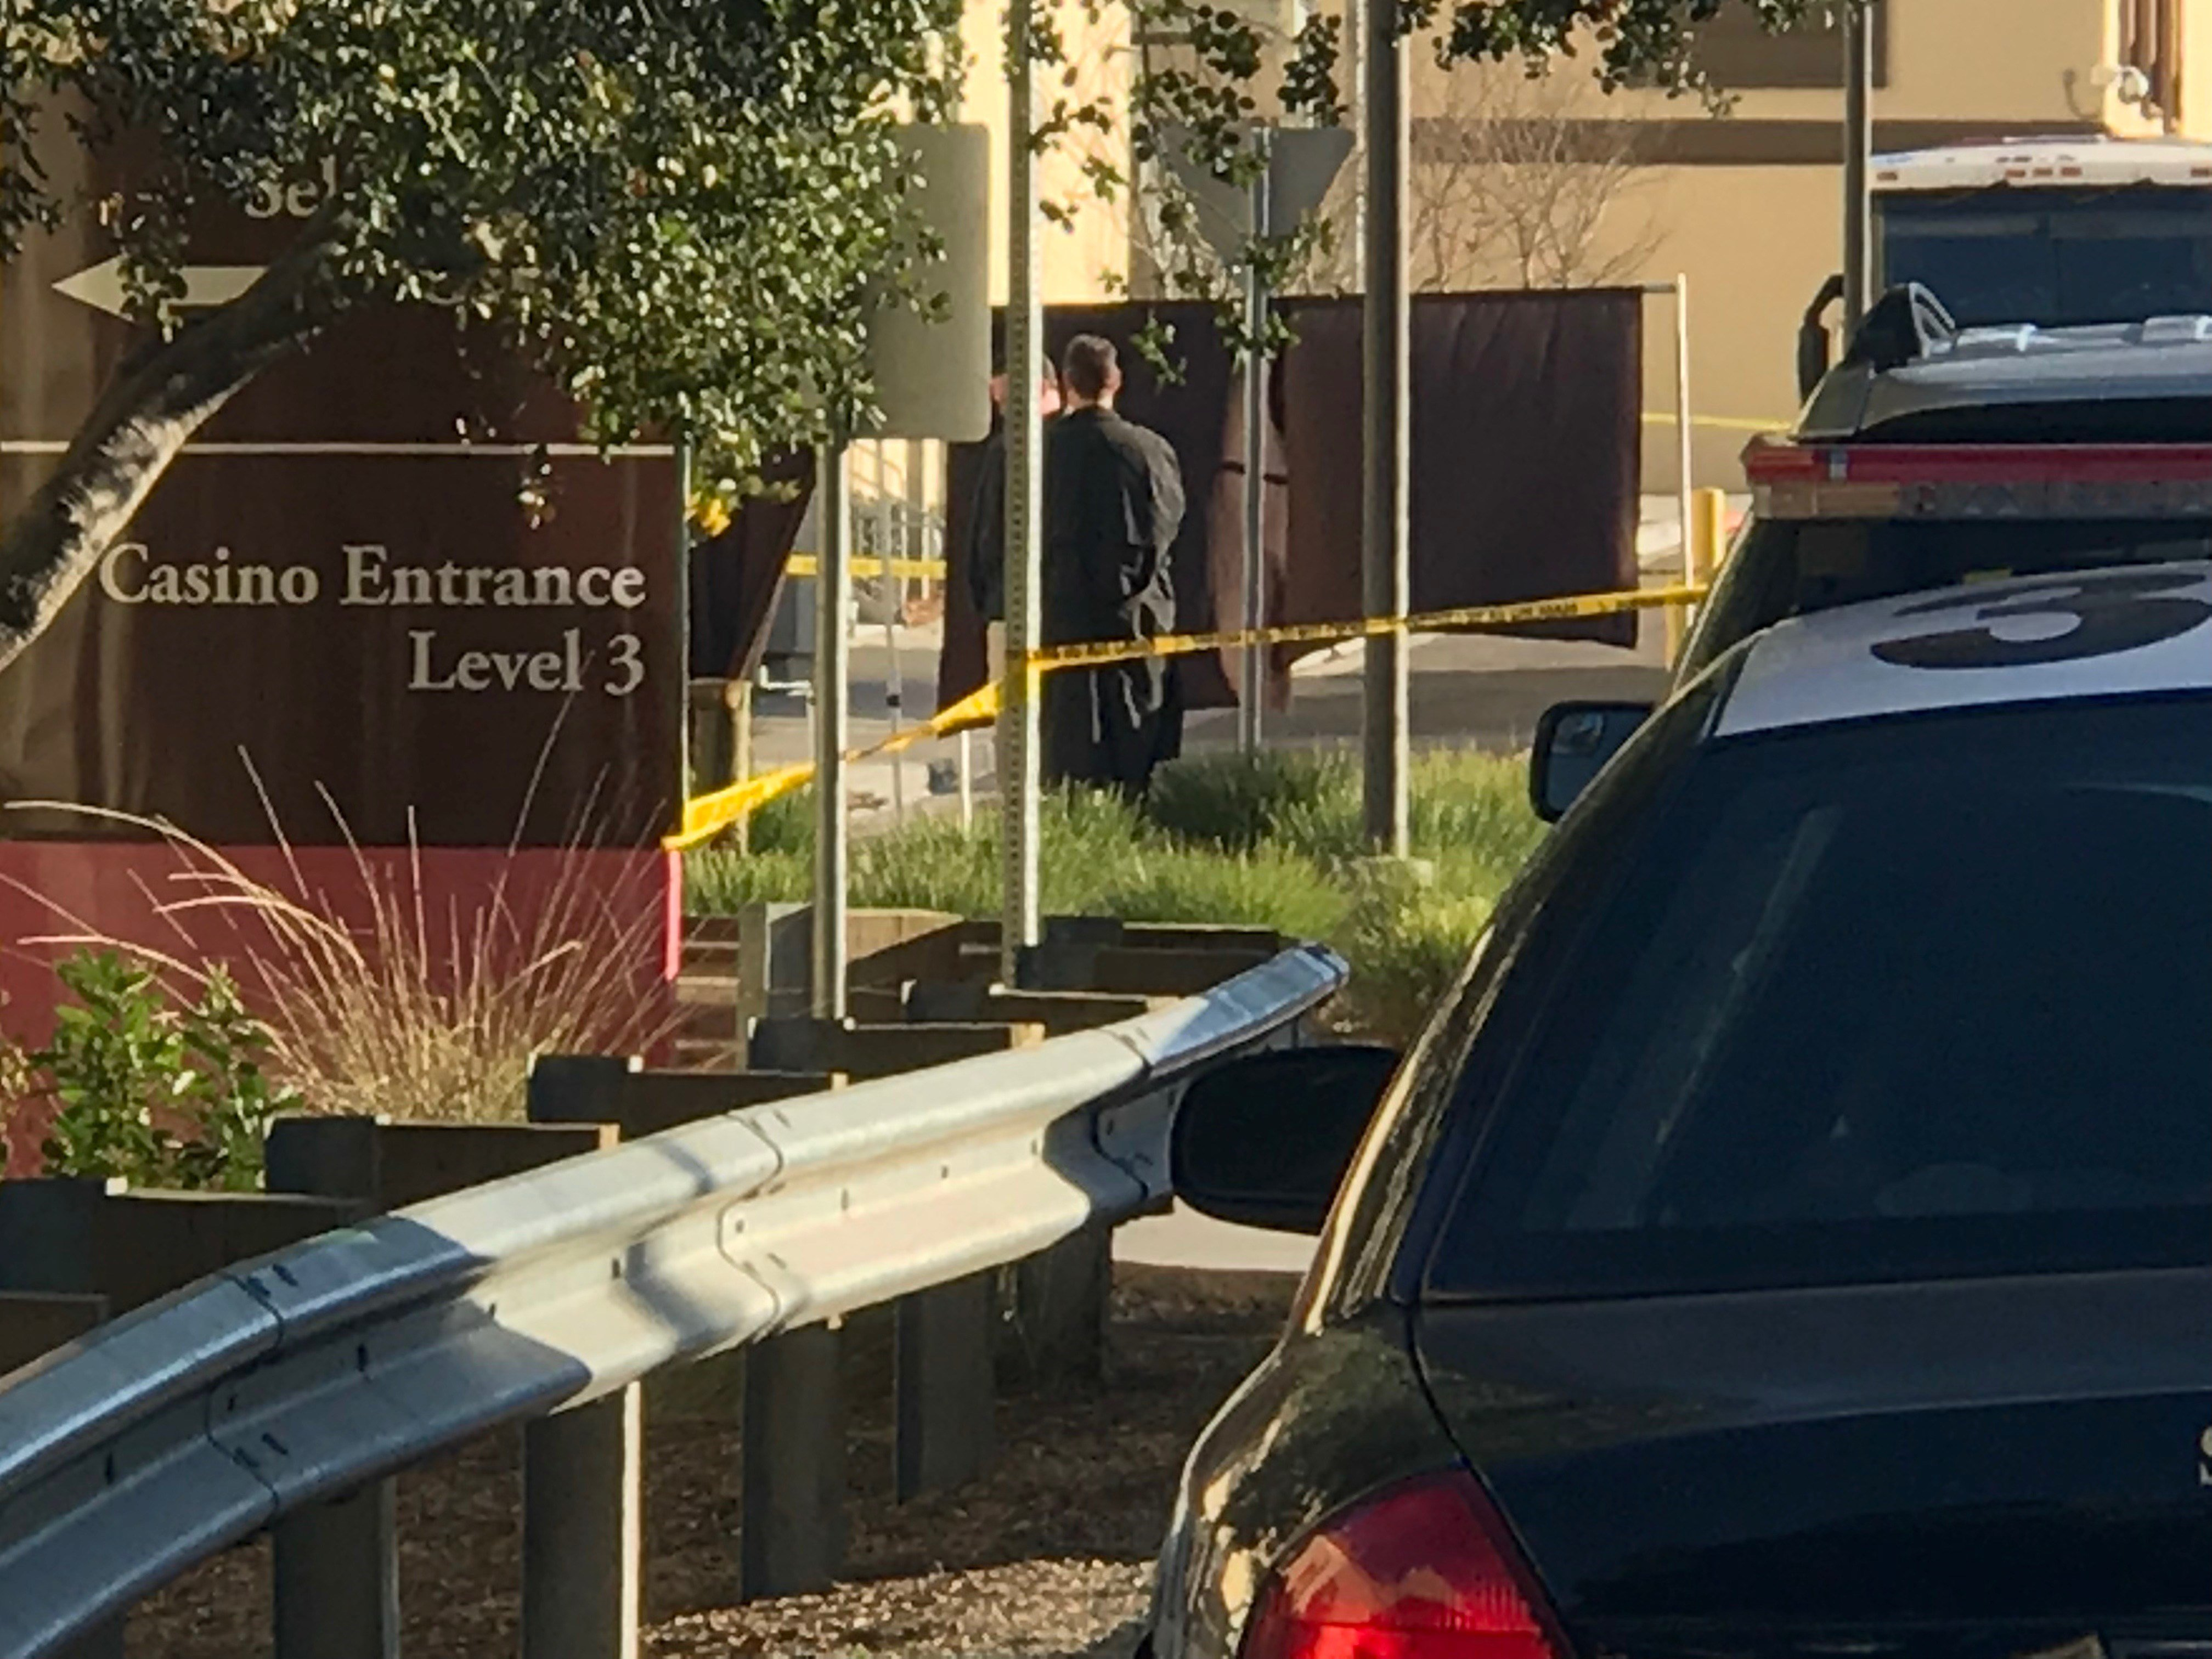 Media isn't being allowed on property while the investigation is ongoing. (Credit: Santa Barbara County Sheriff's Office)